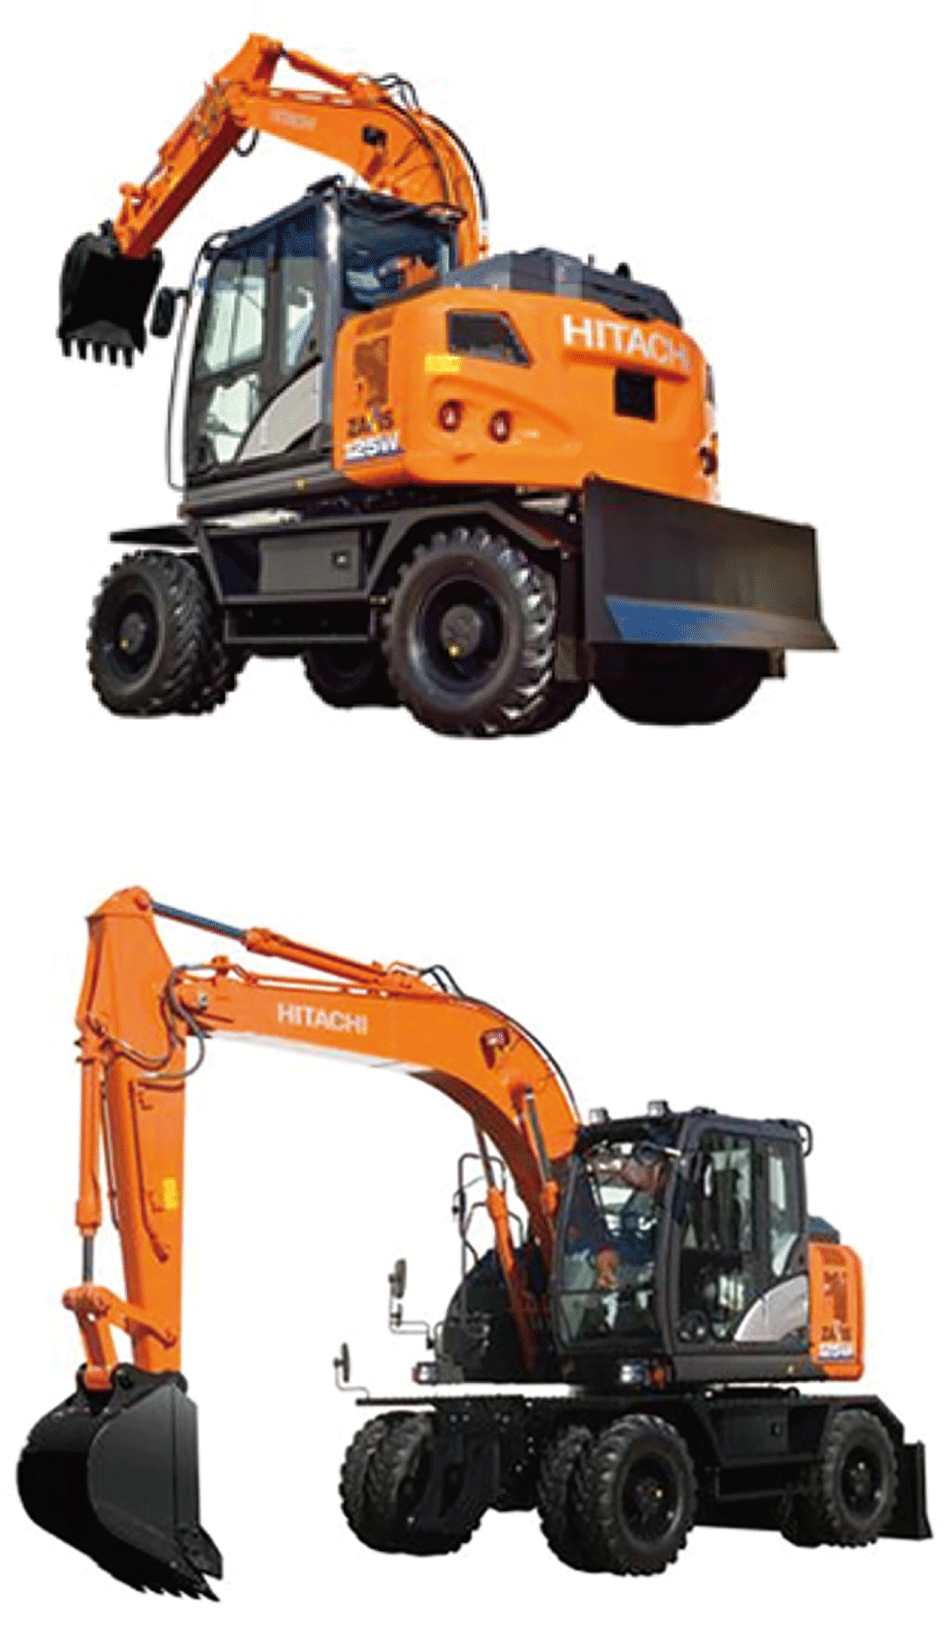 Construction Machinery : Construction Machinery : Hitachi Review